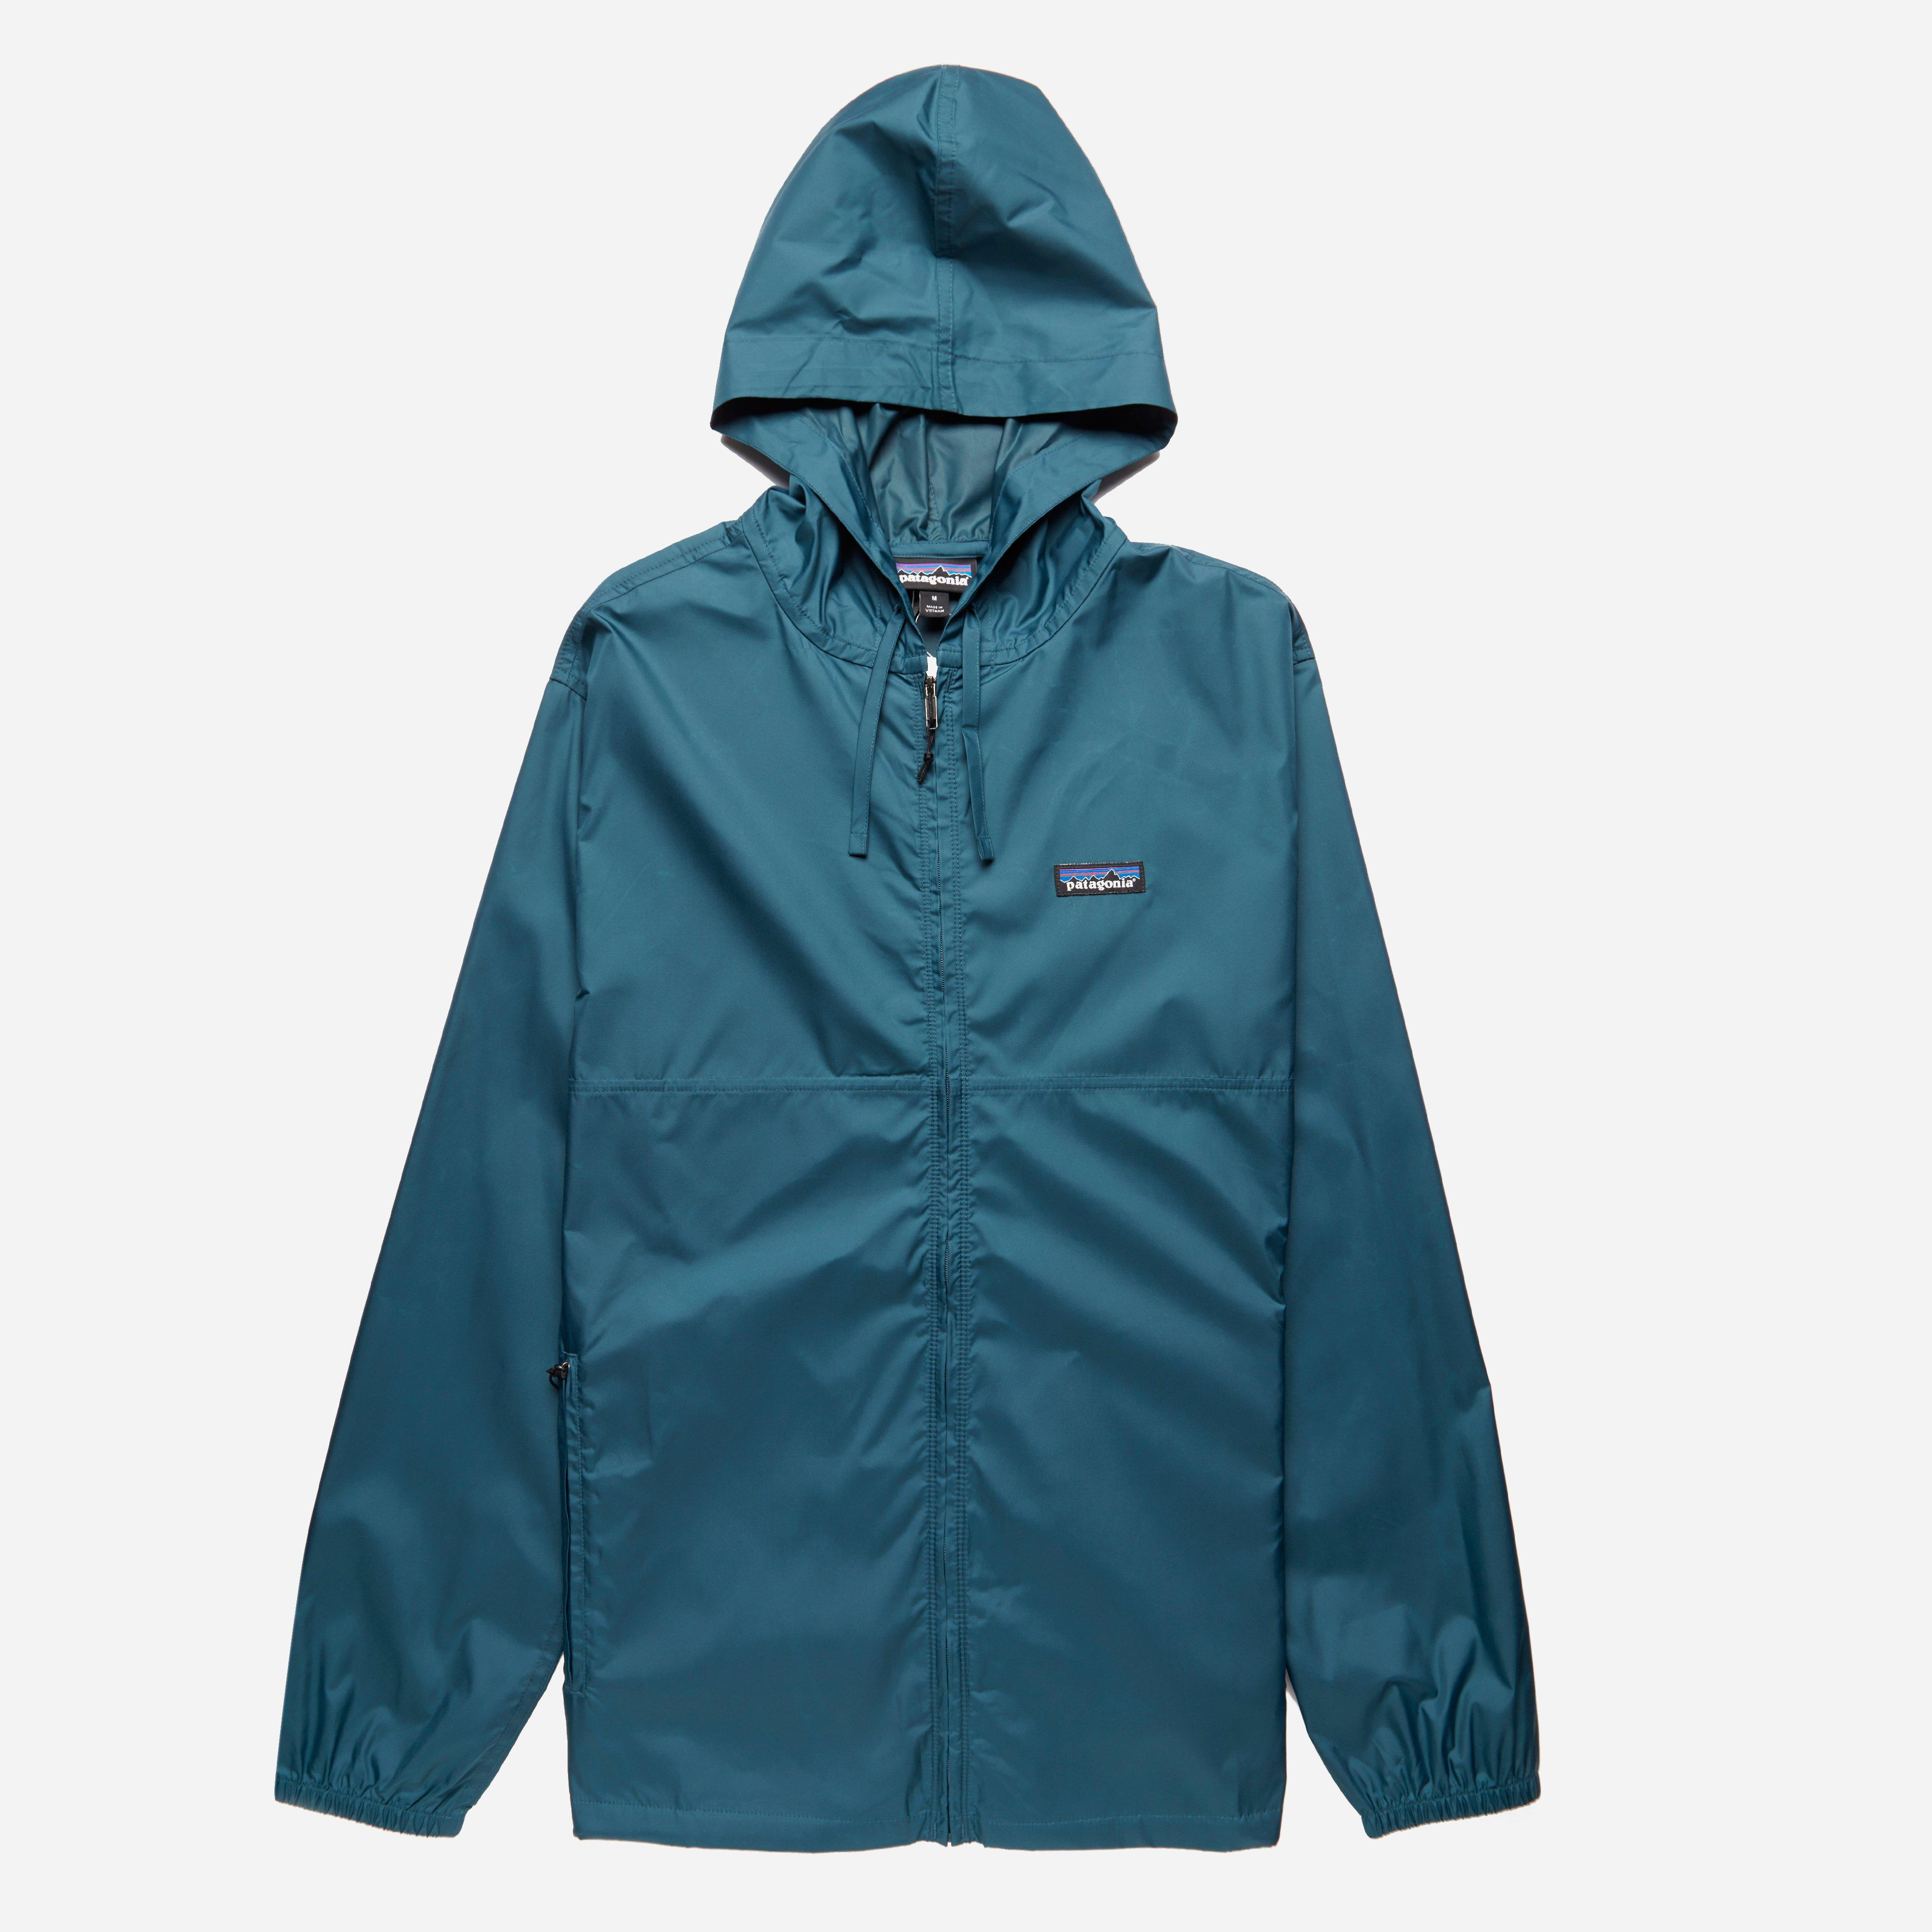 Patagonia M's Light & Variable Jacket